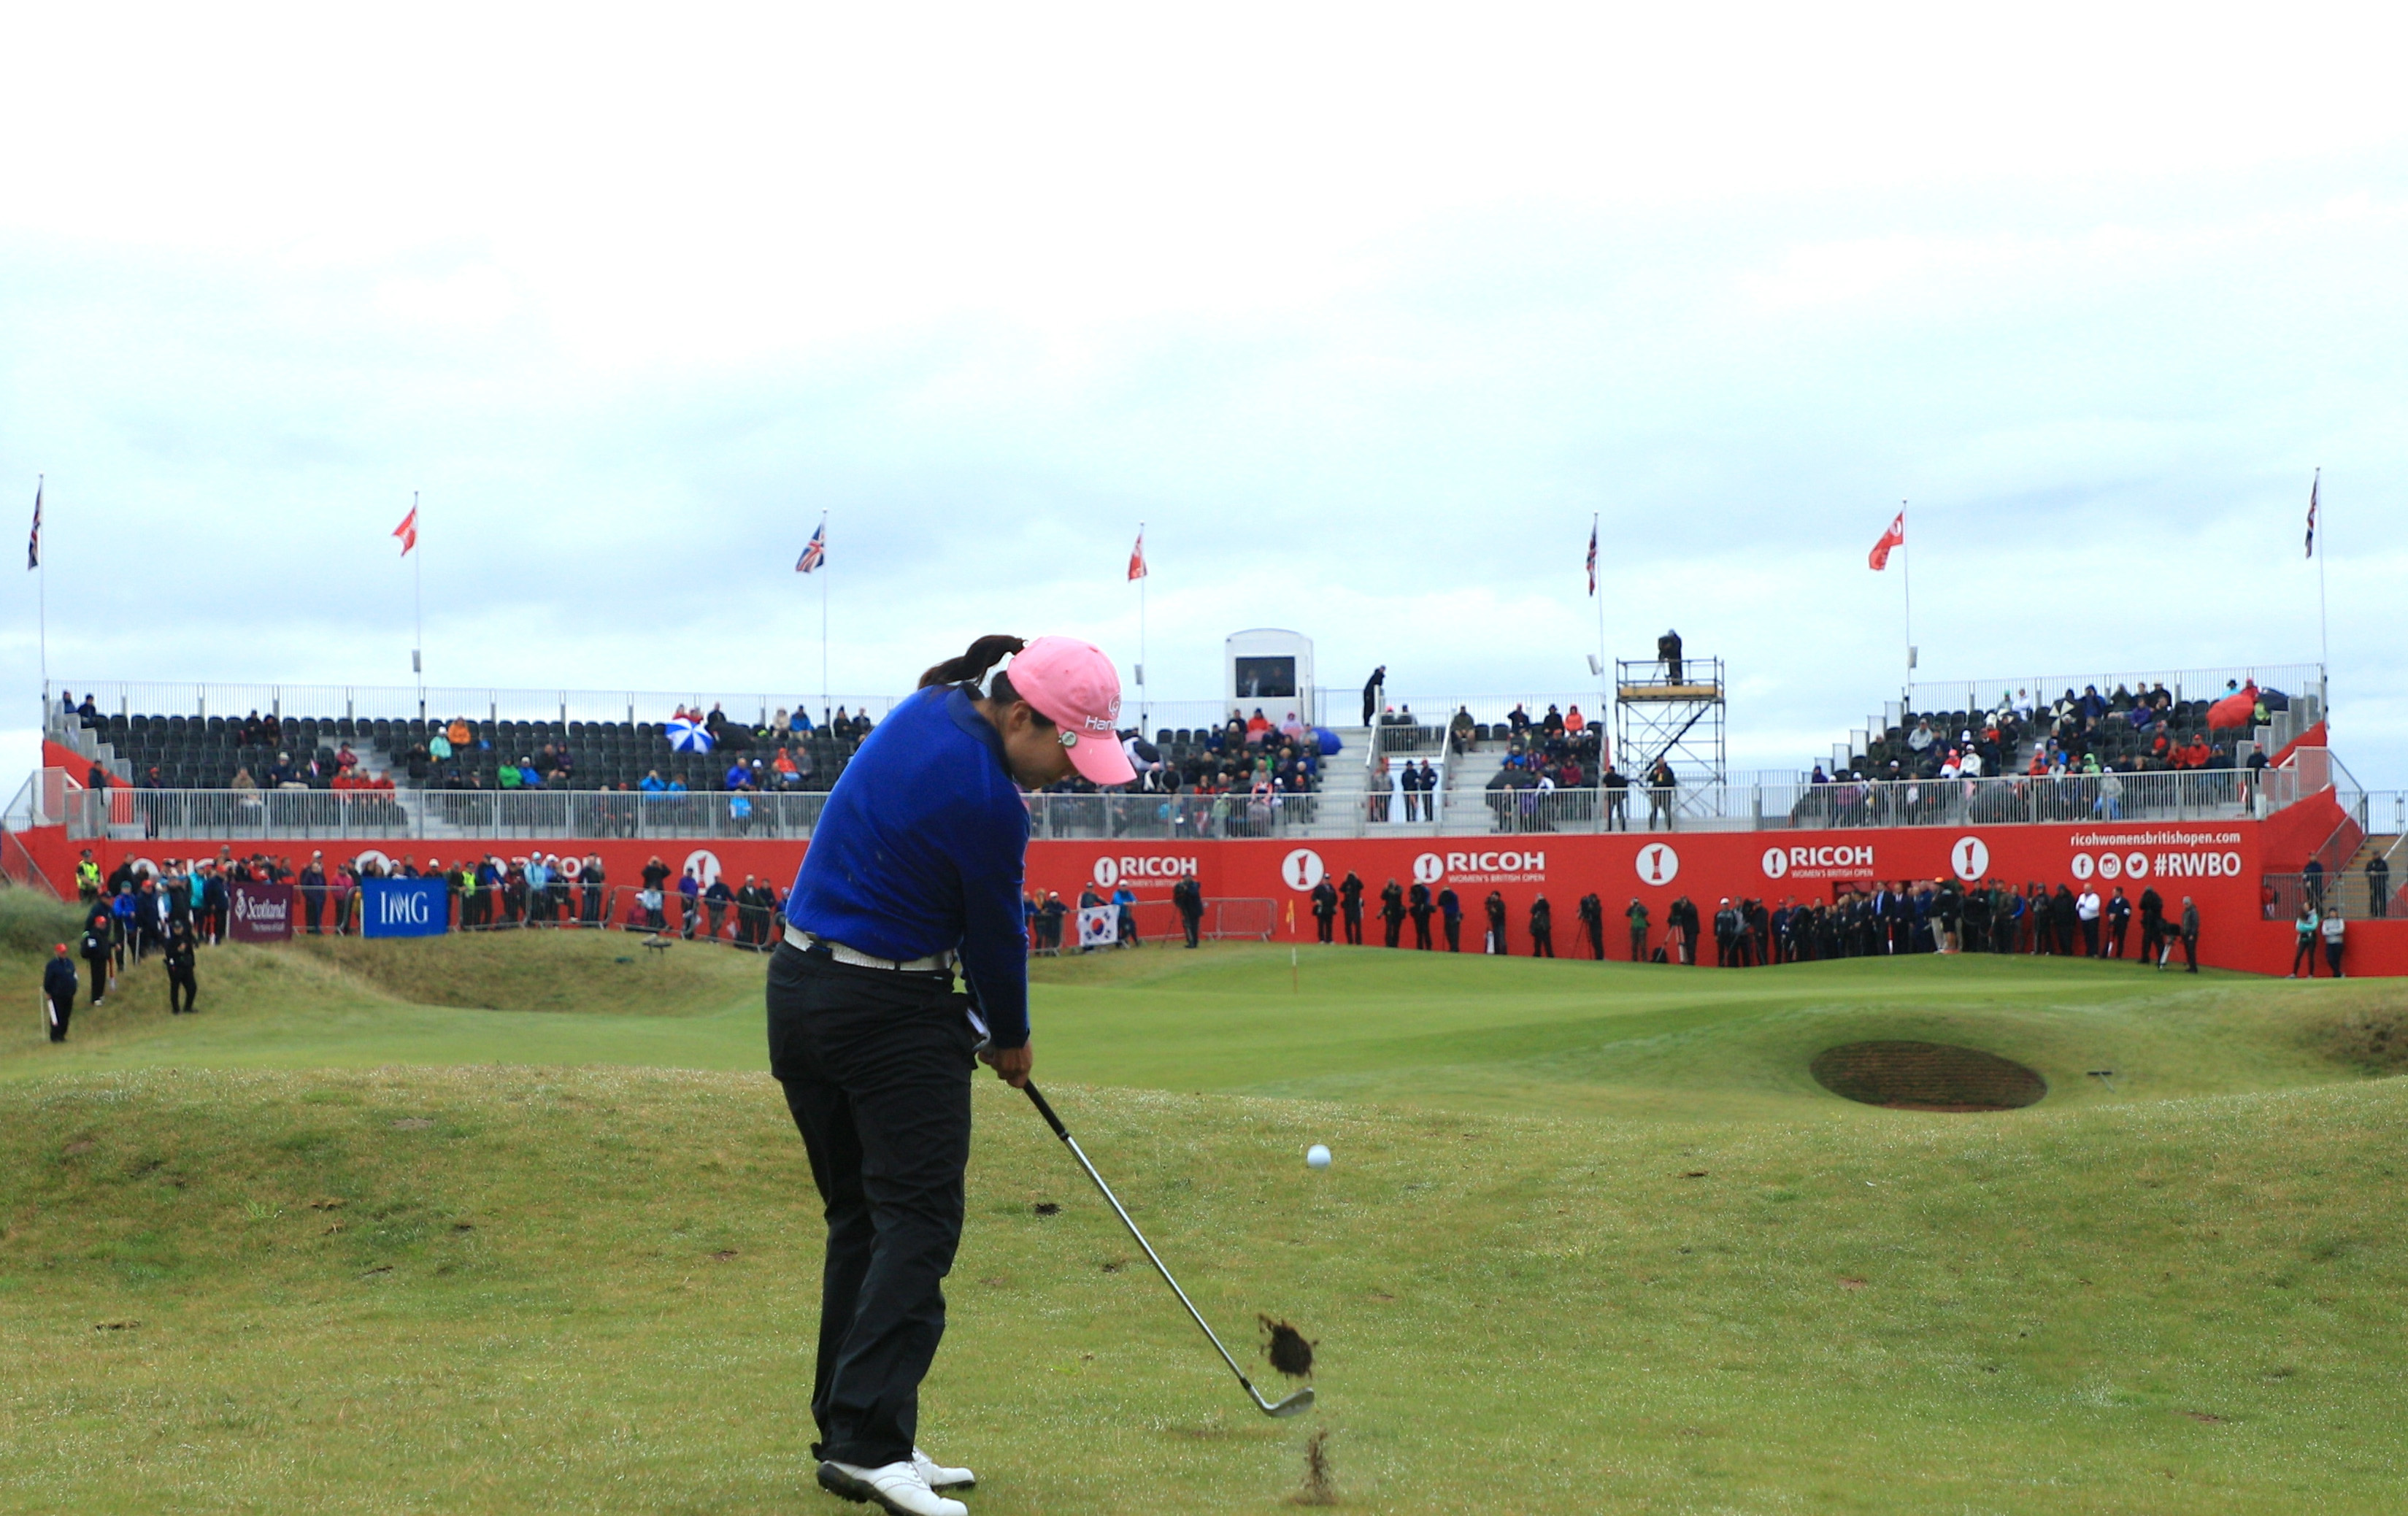 In-Kyung Kim hits her second shot into the 18th green on her way to victory in the Ricoh Women's British Open.